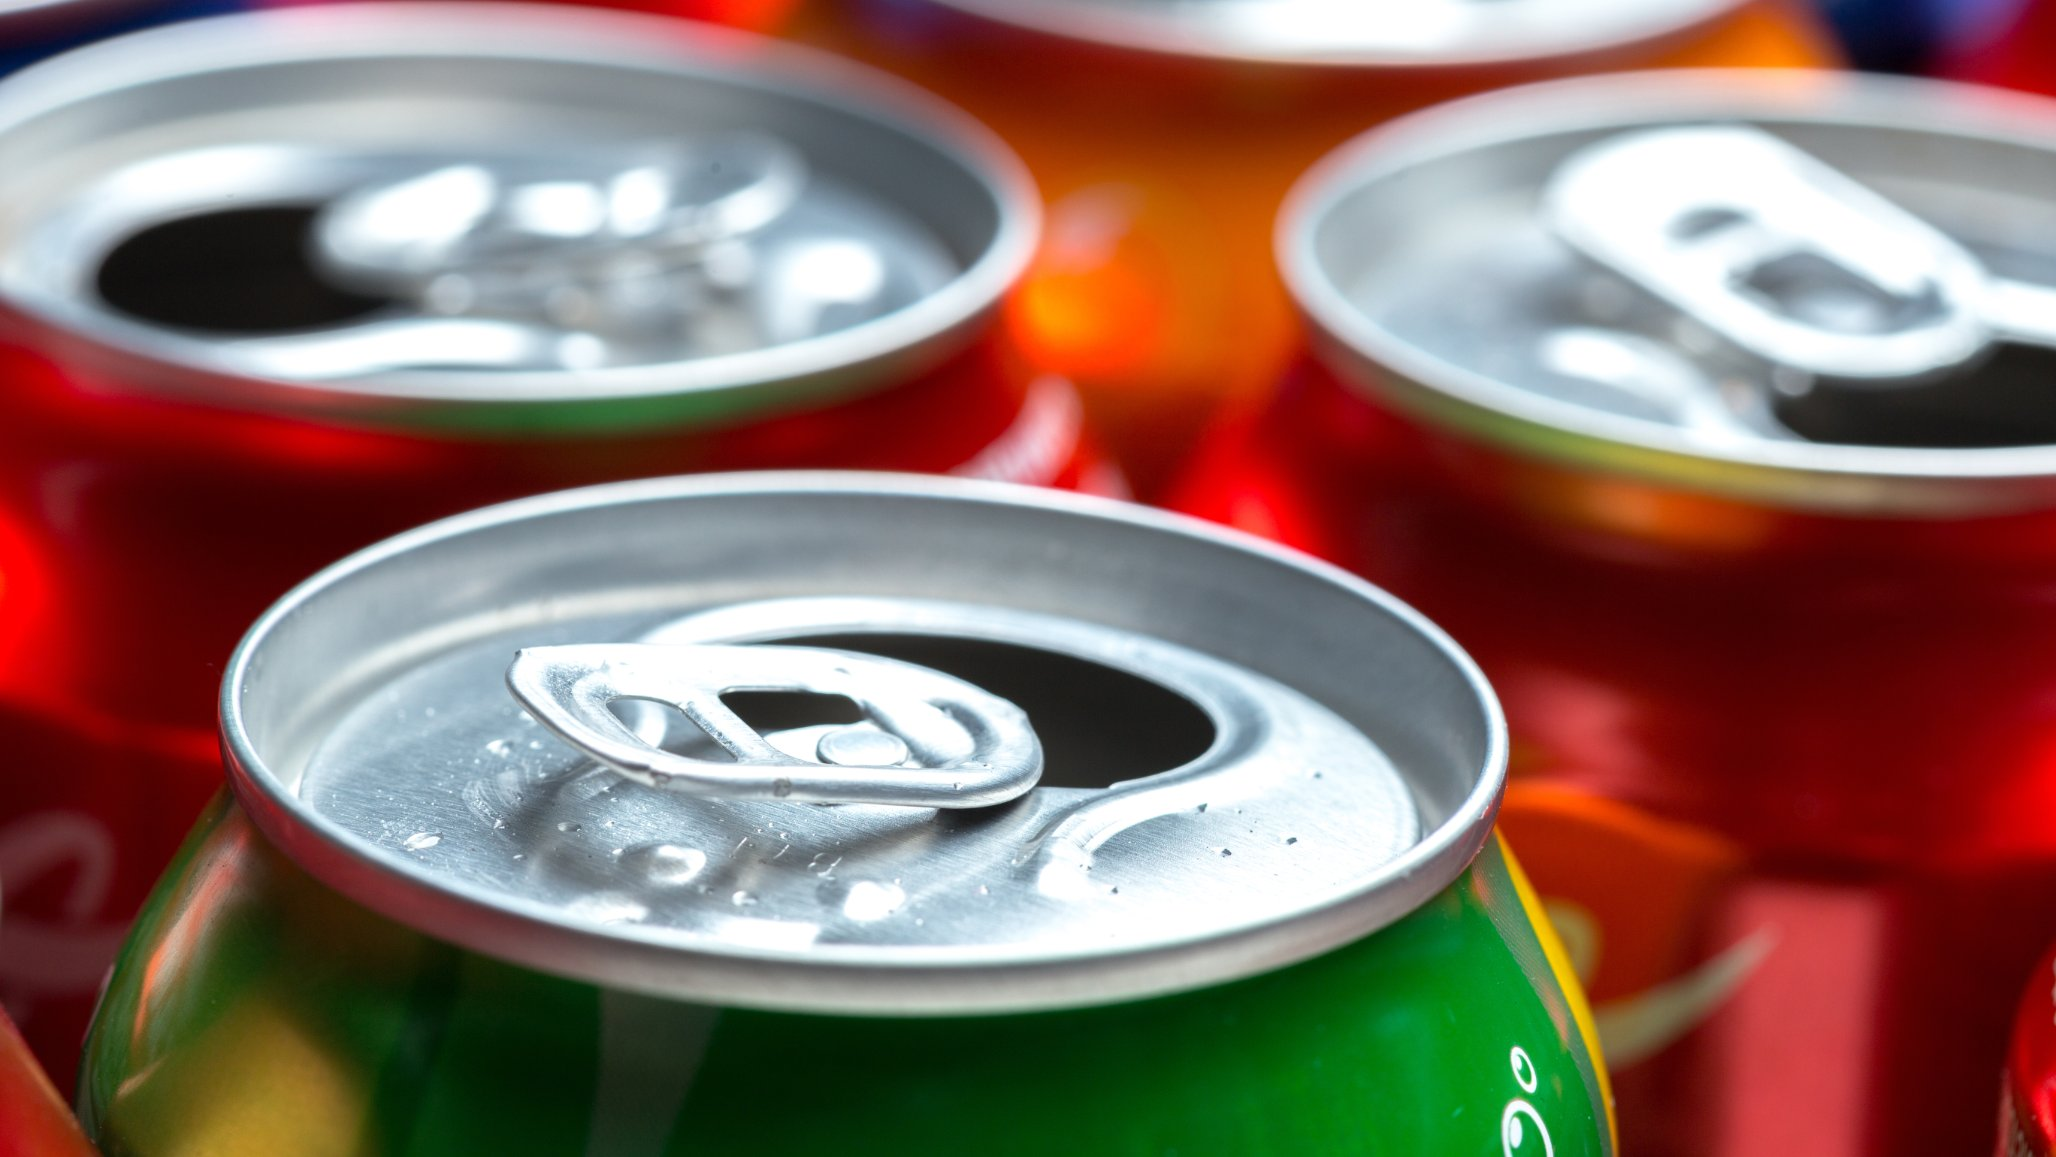 Diet drinks linked to heart issues, study finds. Here's what to do